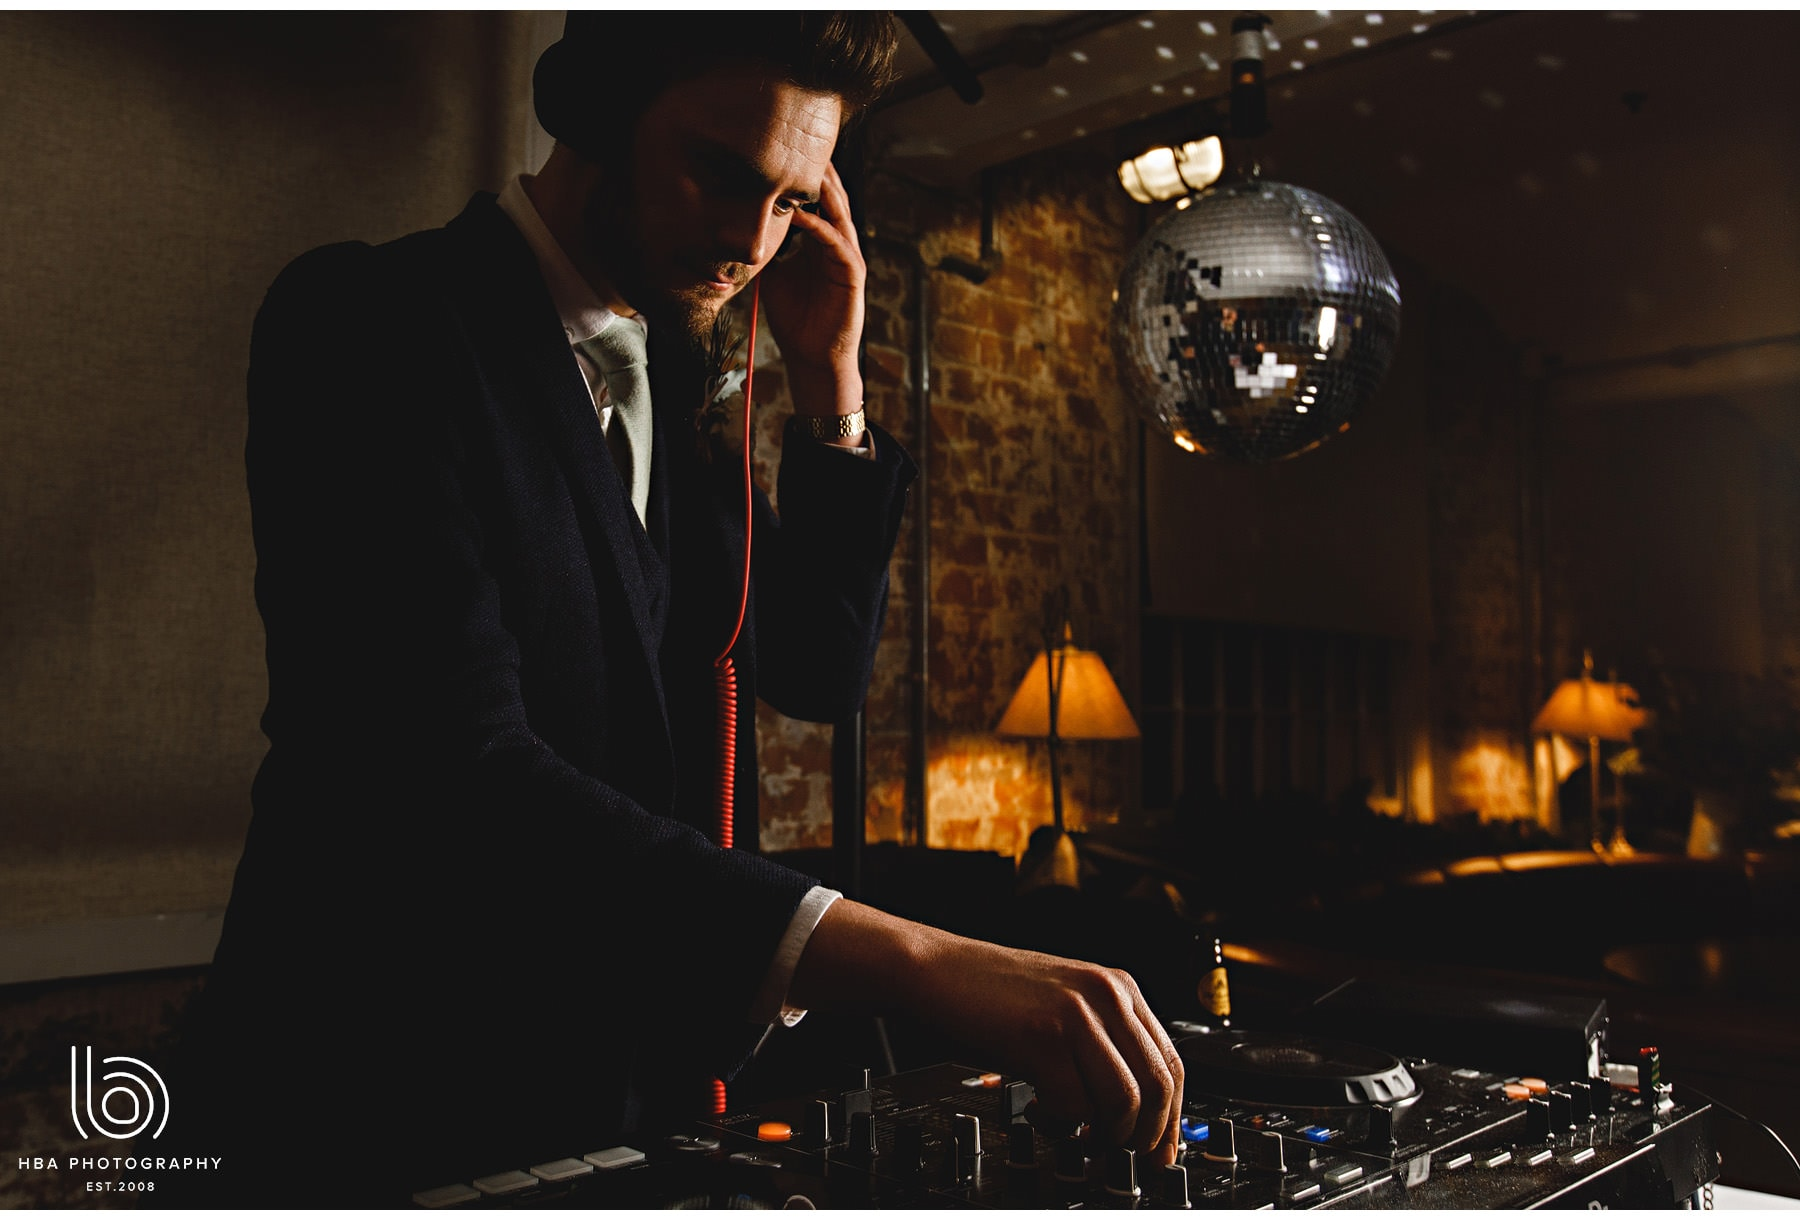 the bride's brother DJing